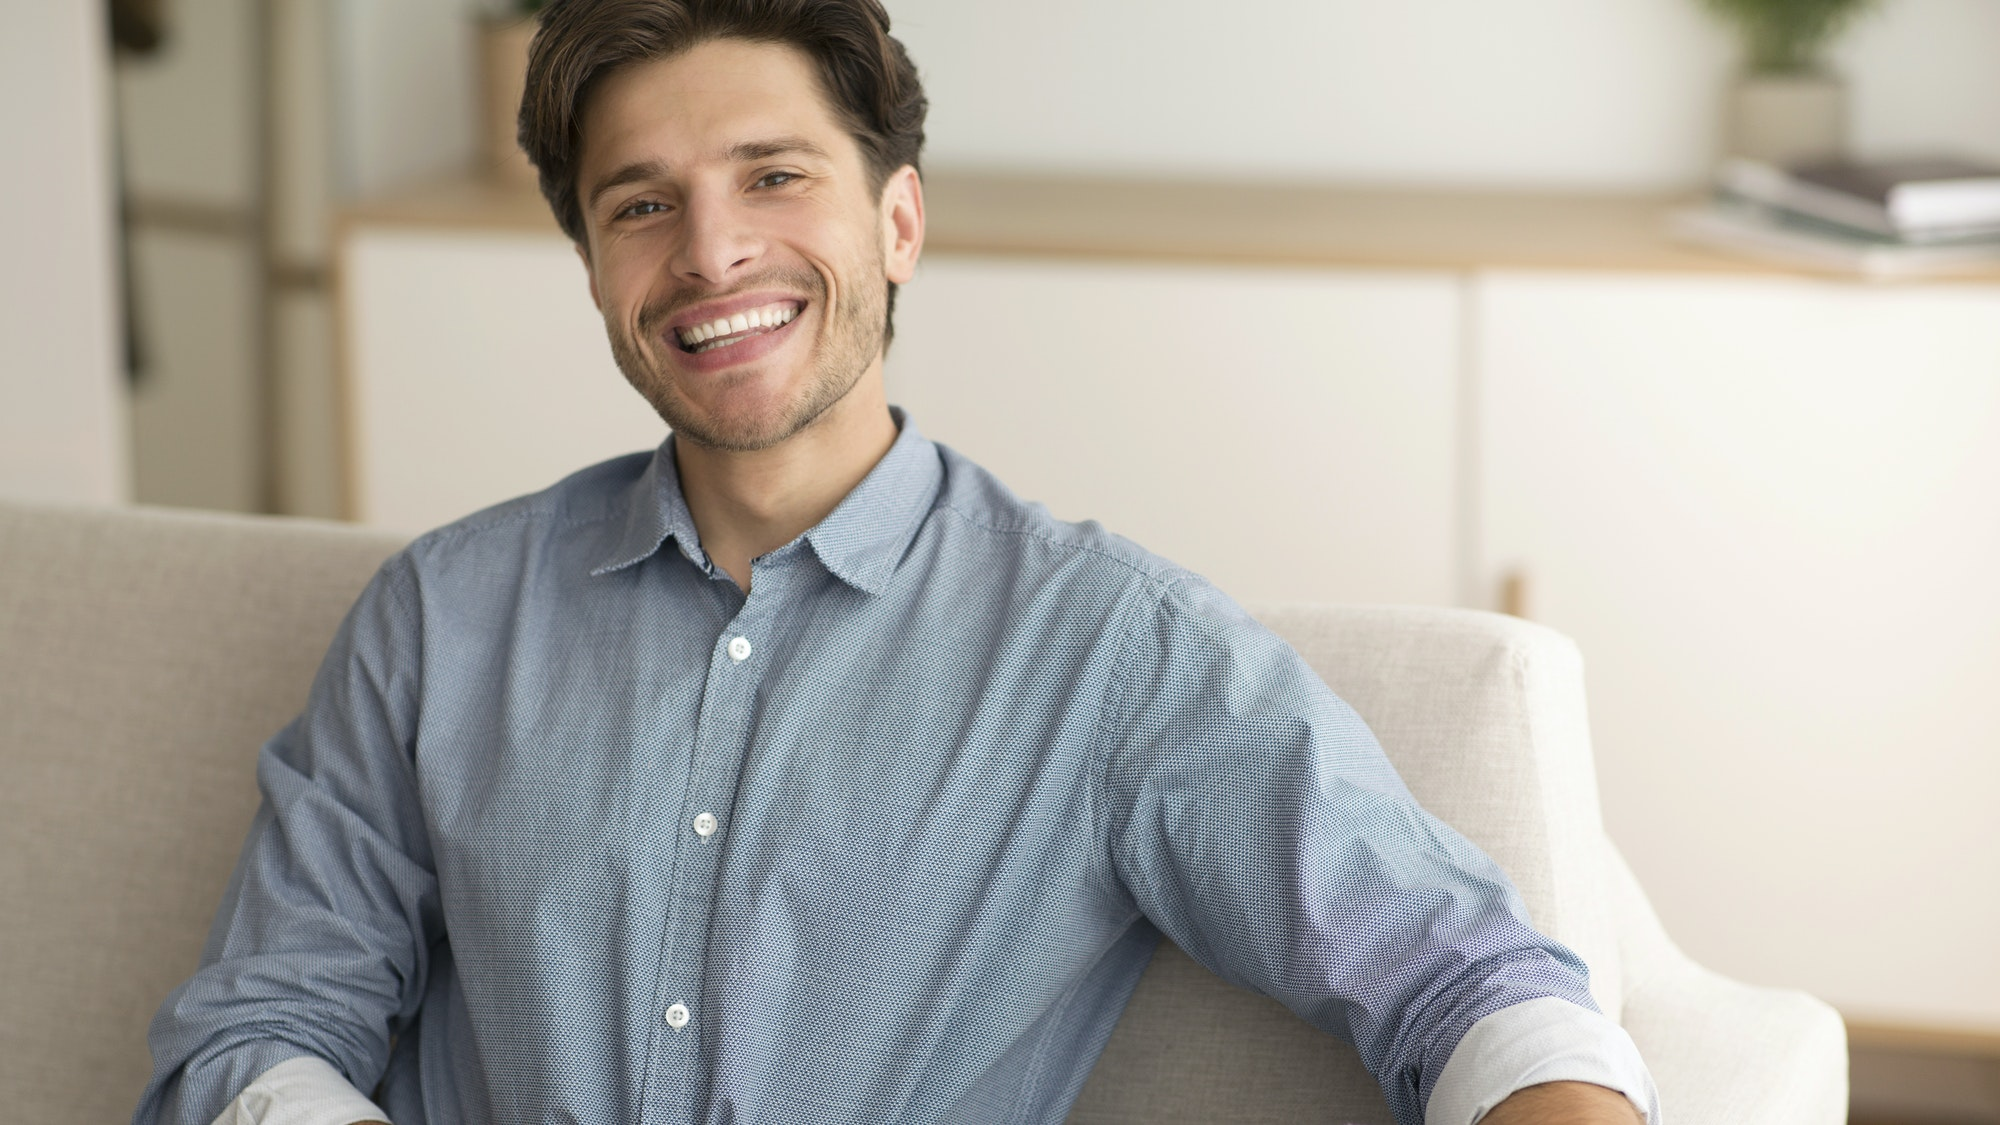 Cheerful Guy Smiling At Camera Resting On Couch At Home